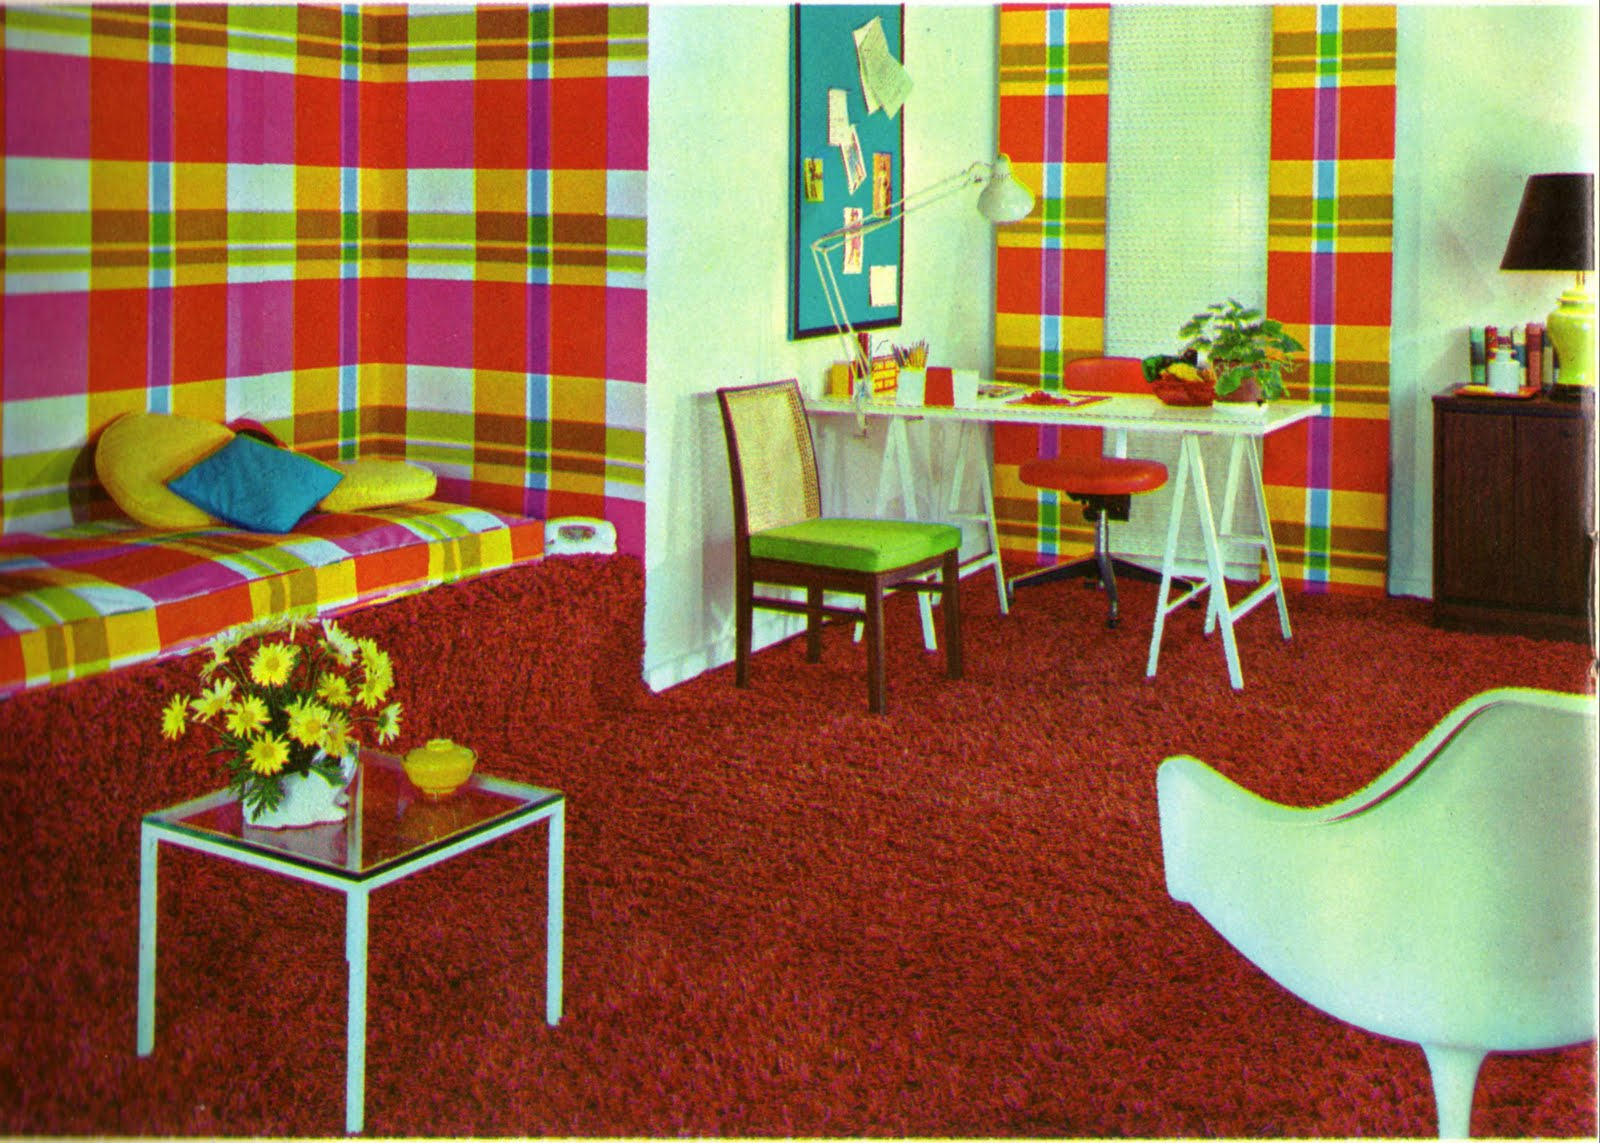 Some interior decorating tips from 1969